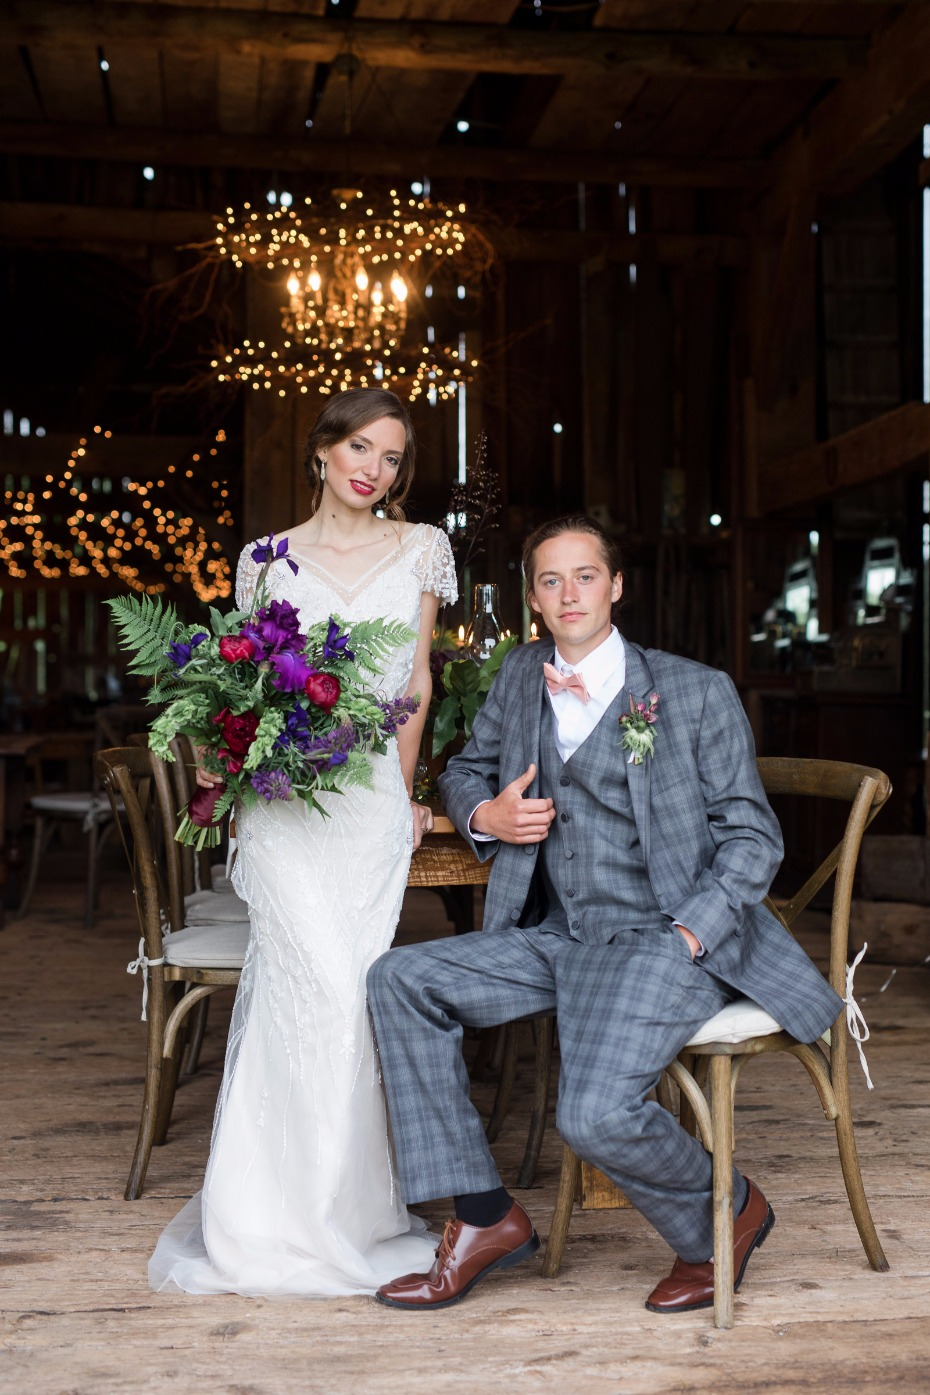 groom in unique plaid suit and bride in a slinky vintage inspired gown